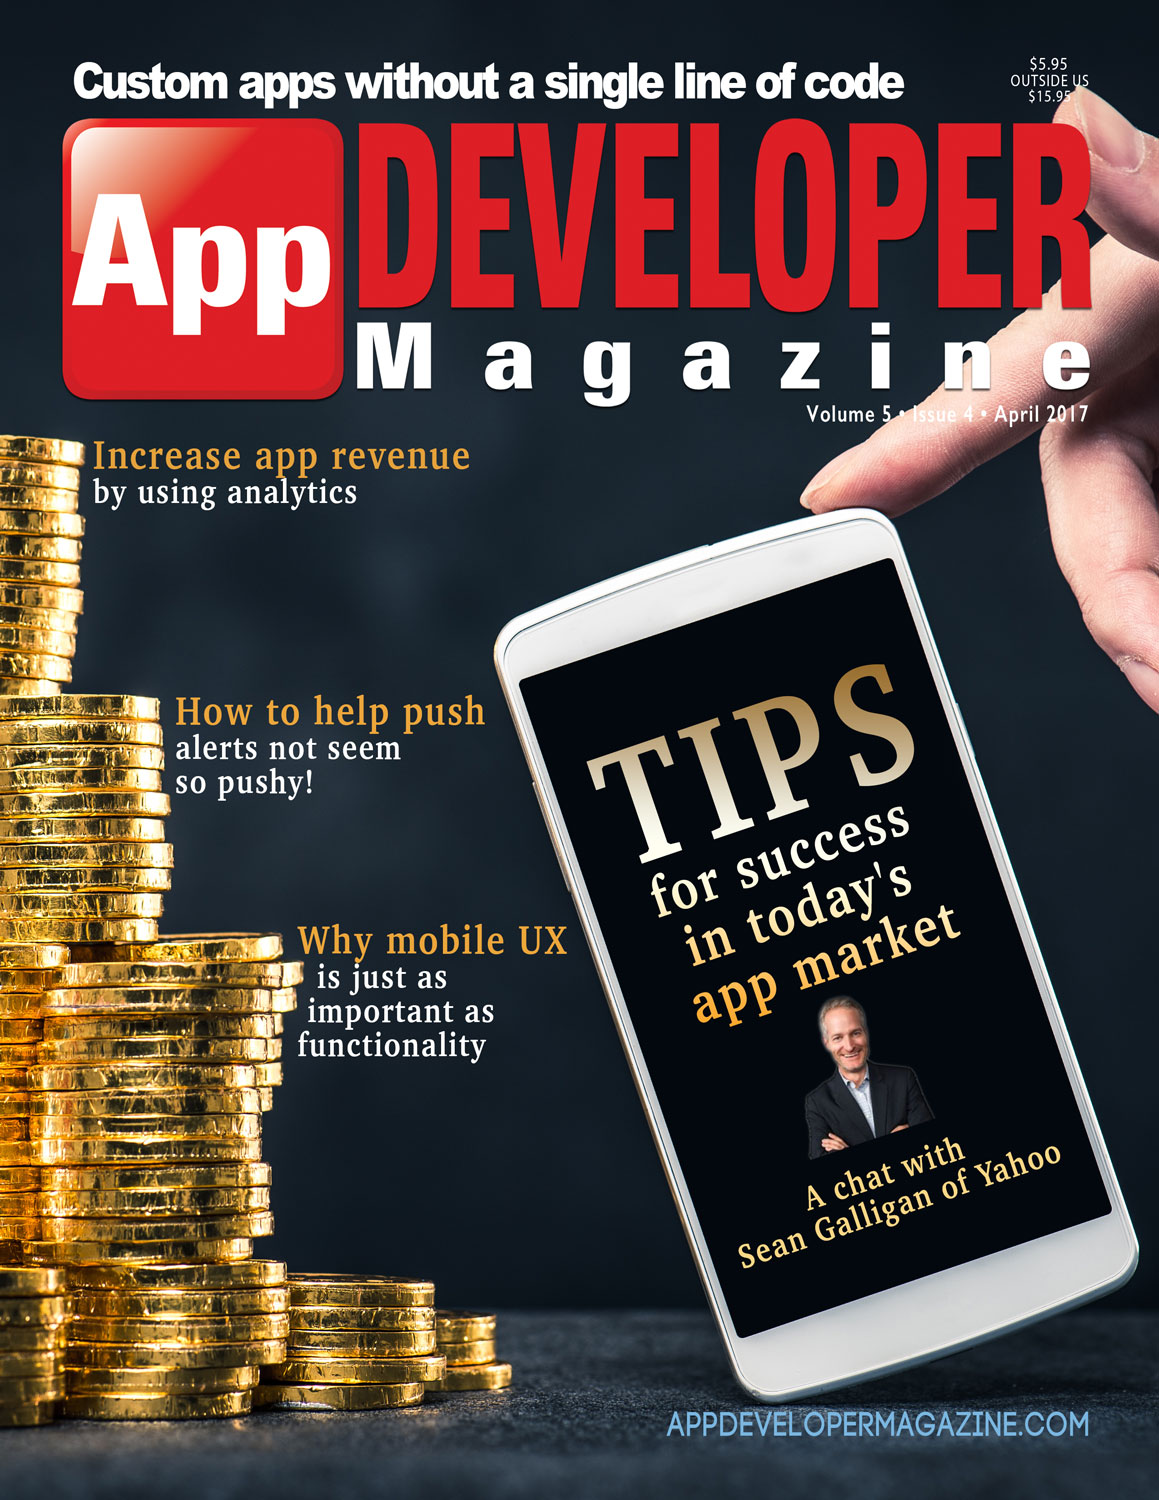 App Developer Magazine April 2017 Cover